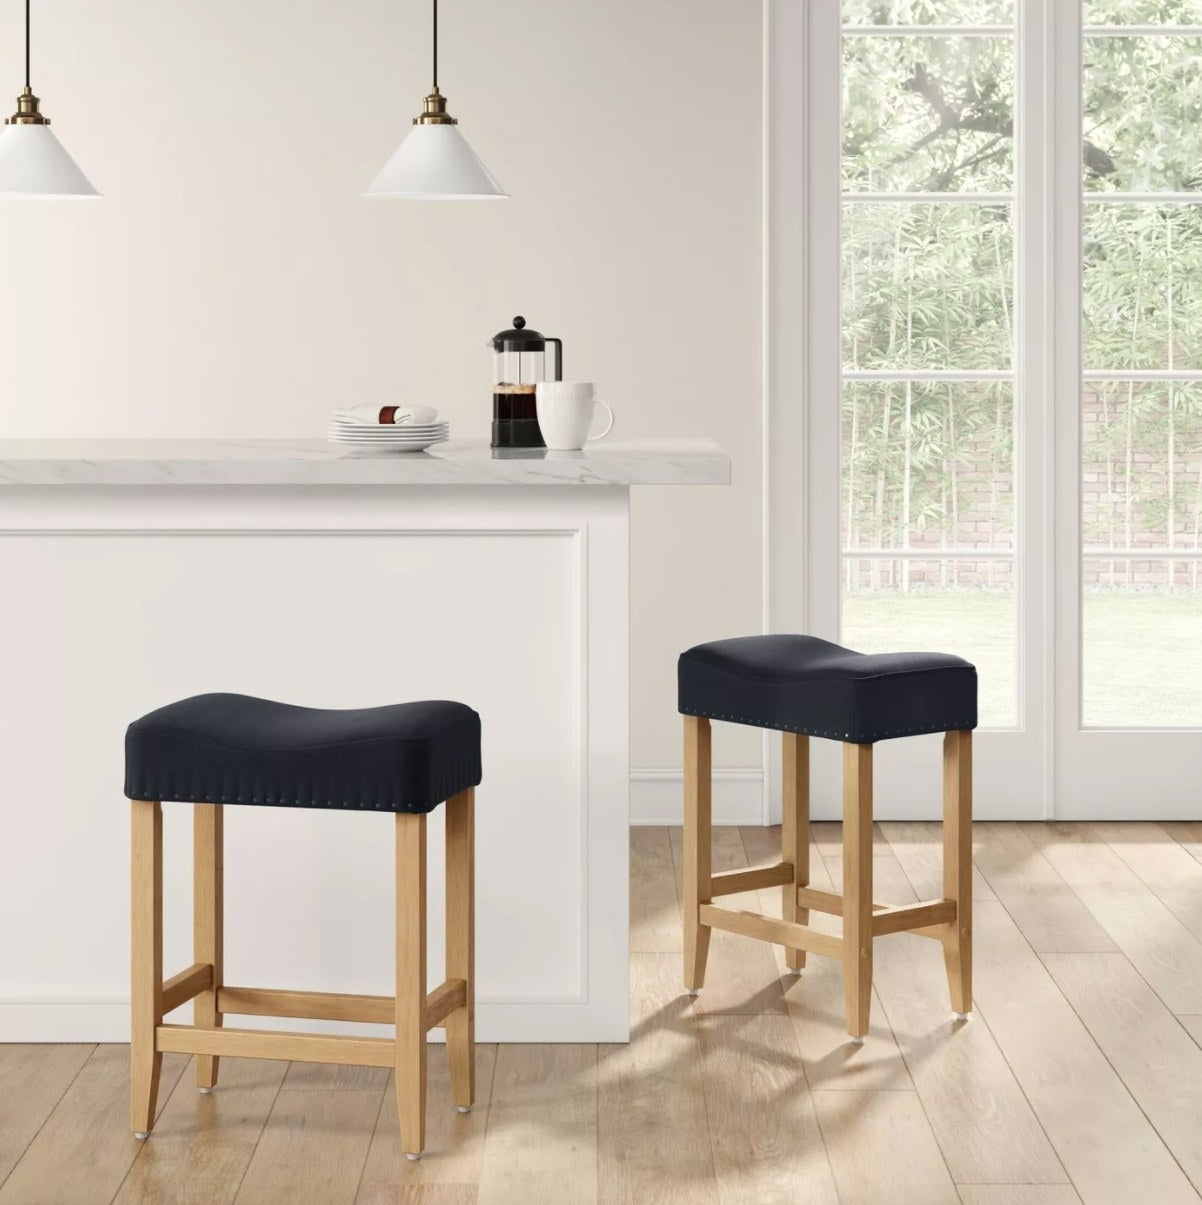 A pair of bar stools with navy cushions, nailhead detail, and wooden legs